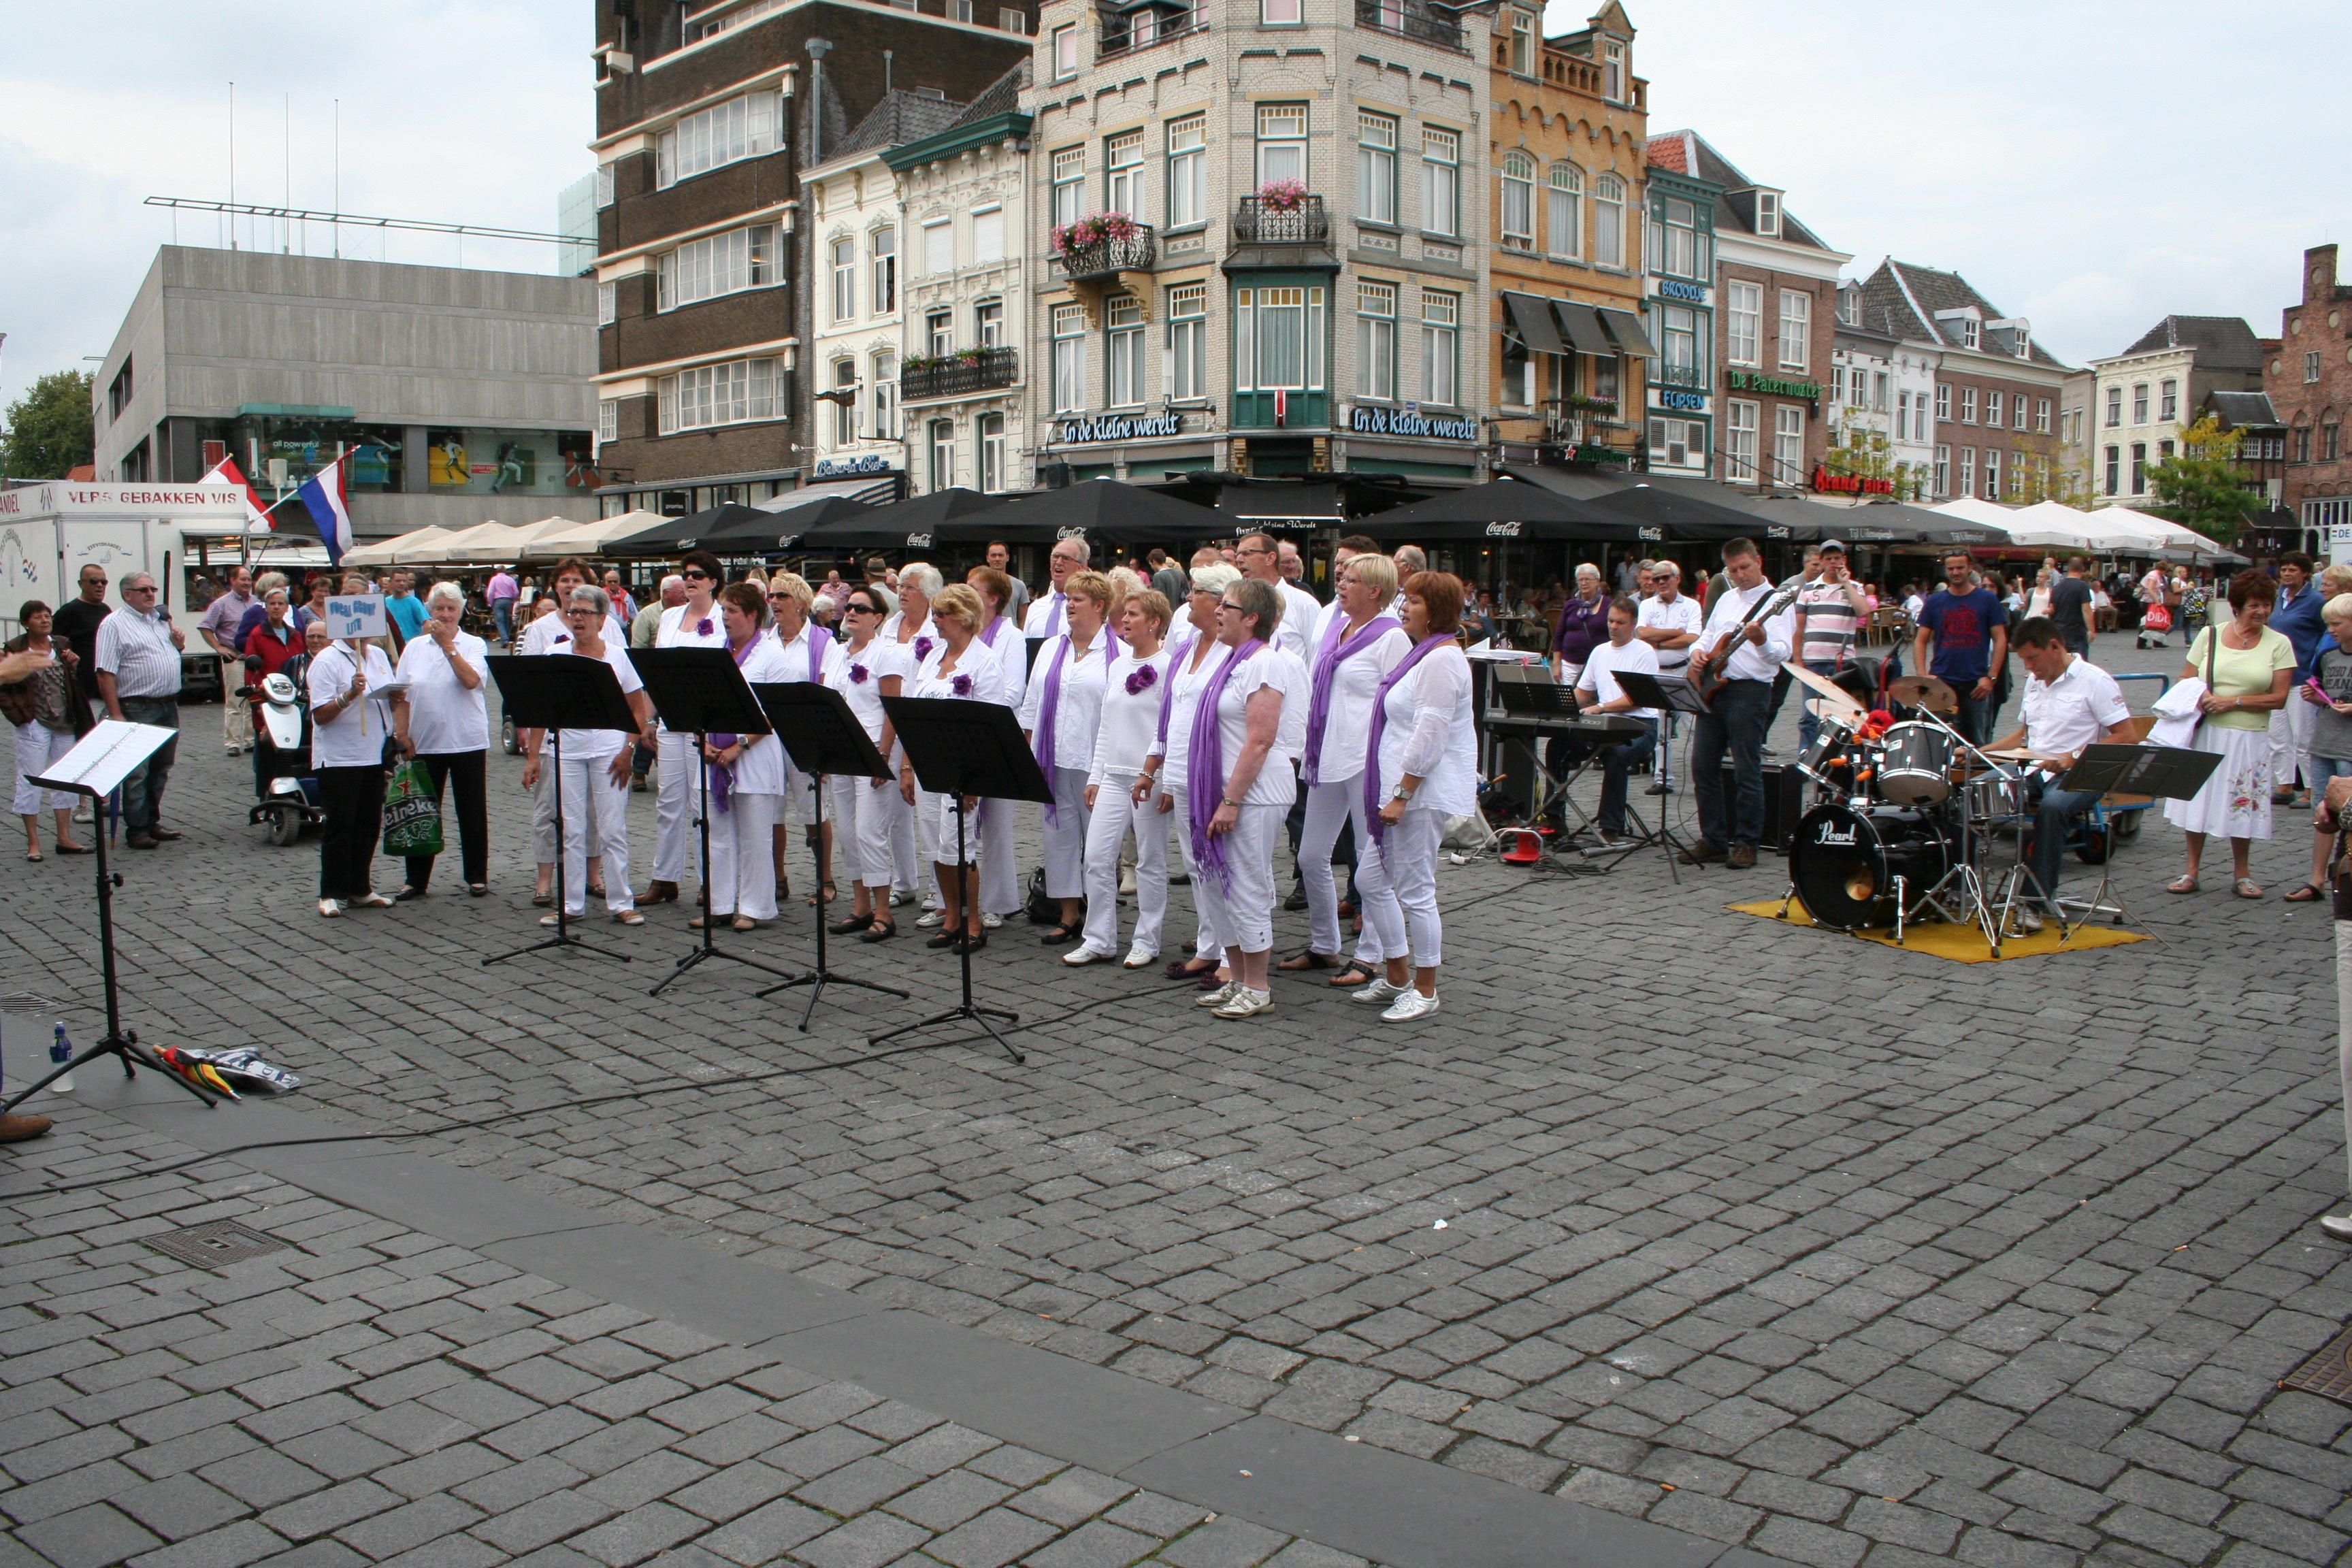 https://vocalgrouplith.nl/new/wp-content/uploads/2017/01/2011-09-04-VGL-markt-Den-Bosch-.jpg